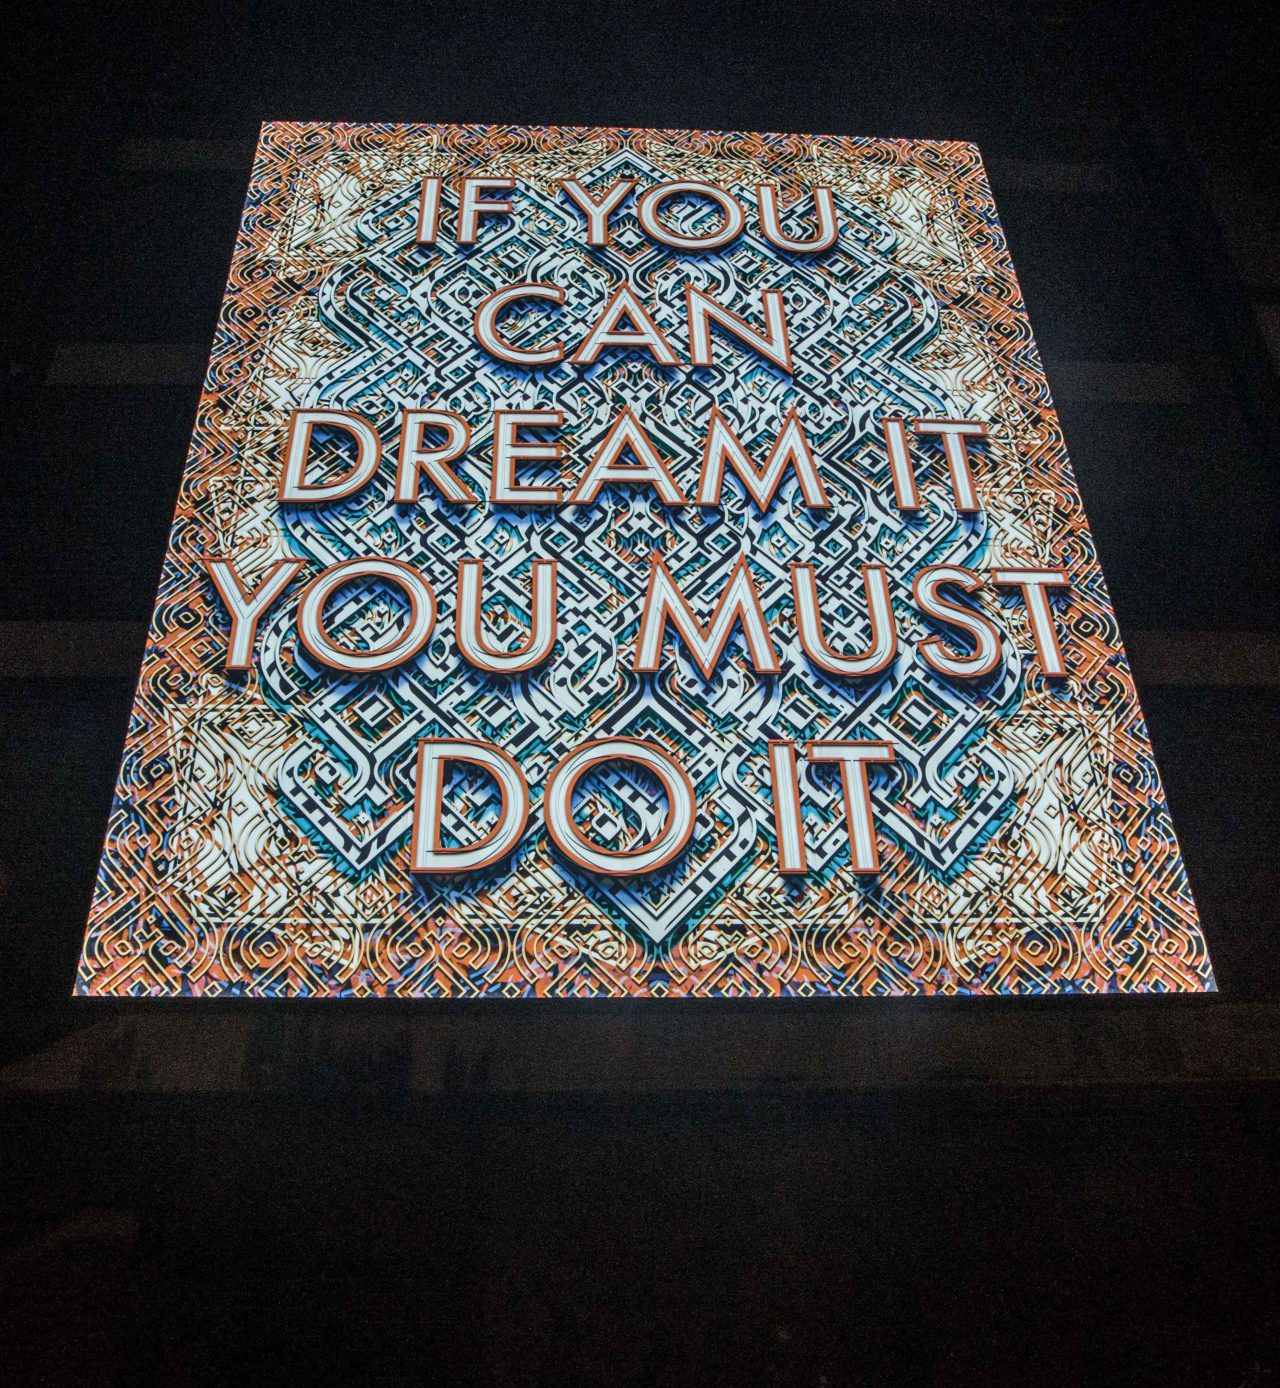 Beacon by Mark Titchner